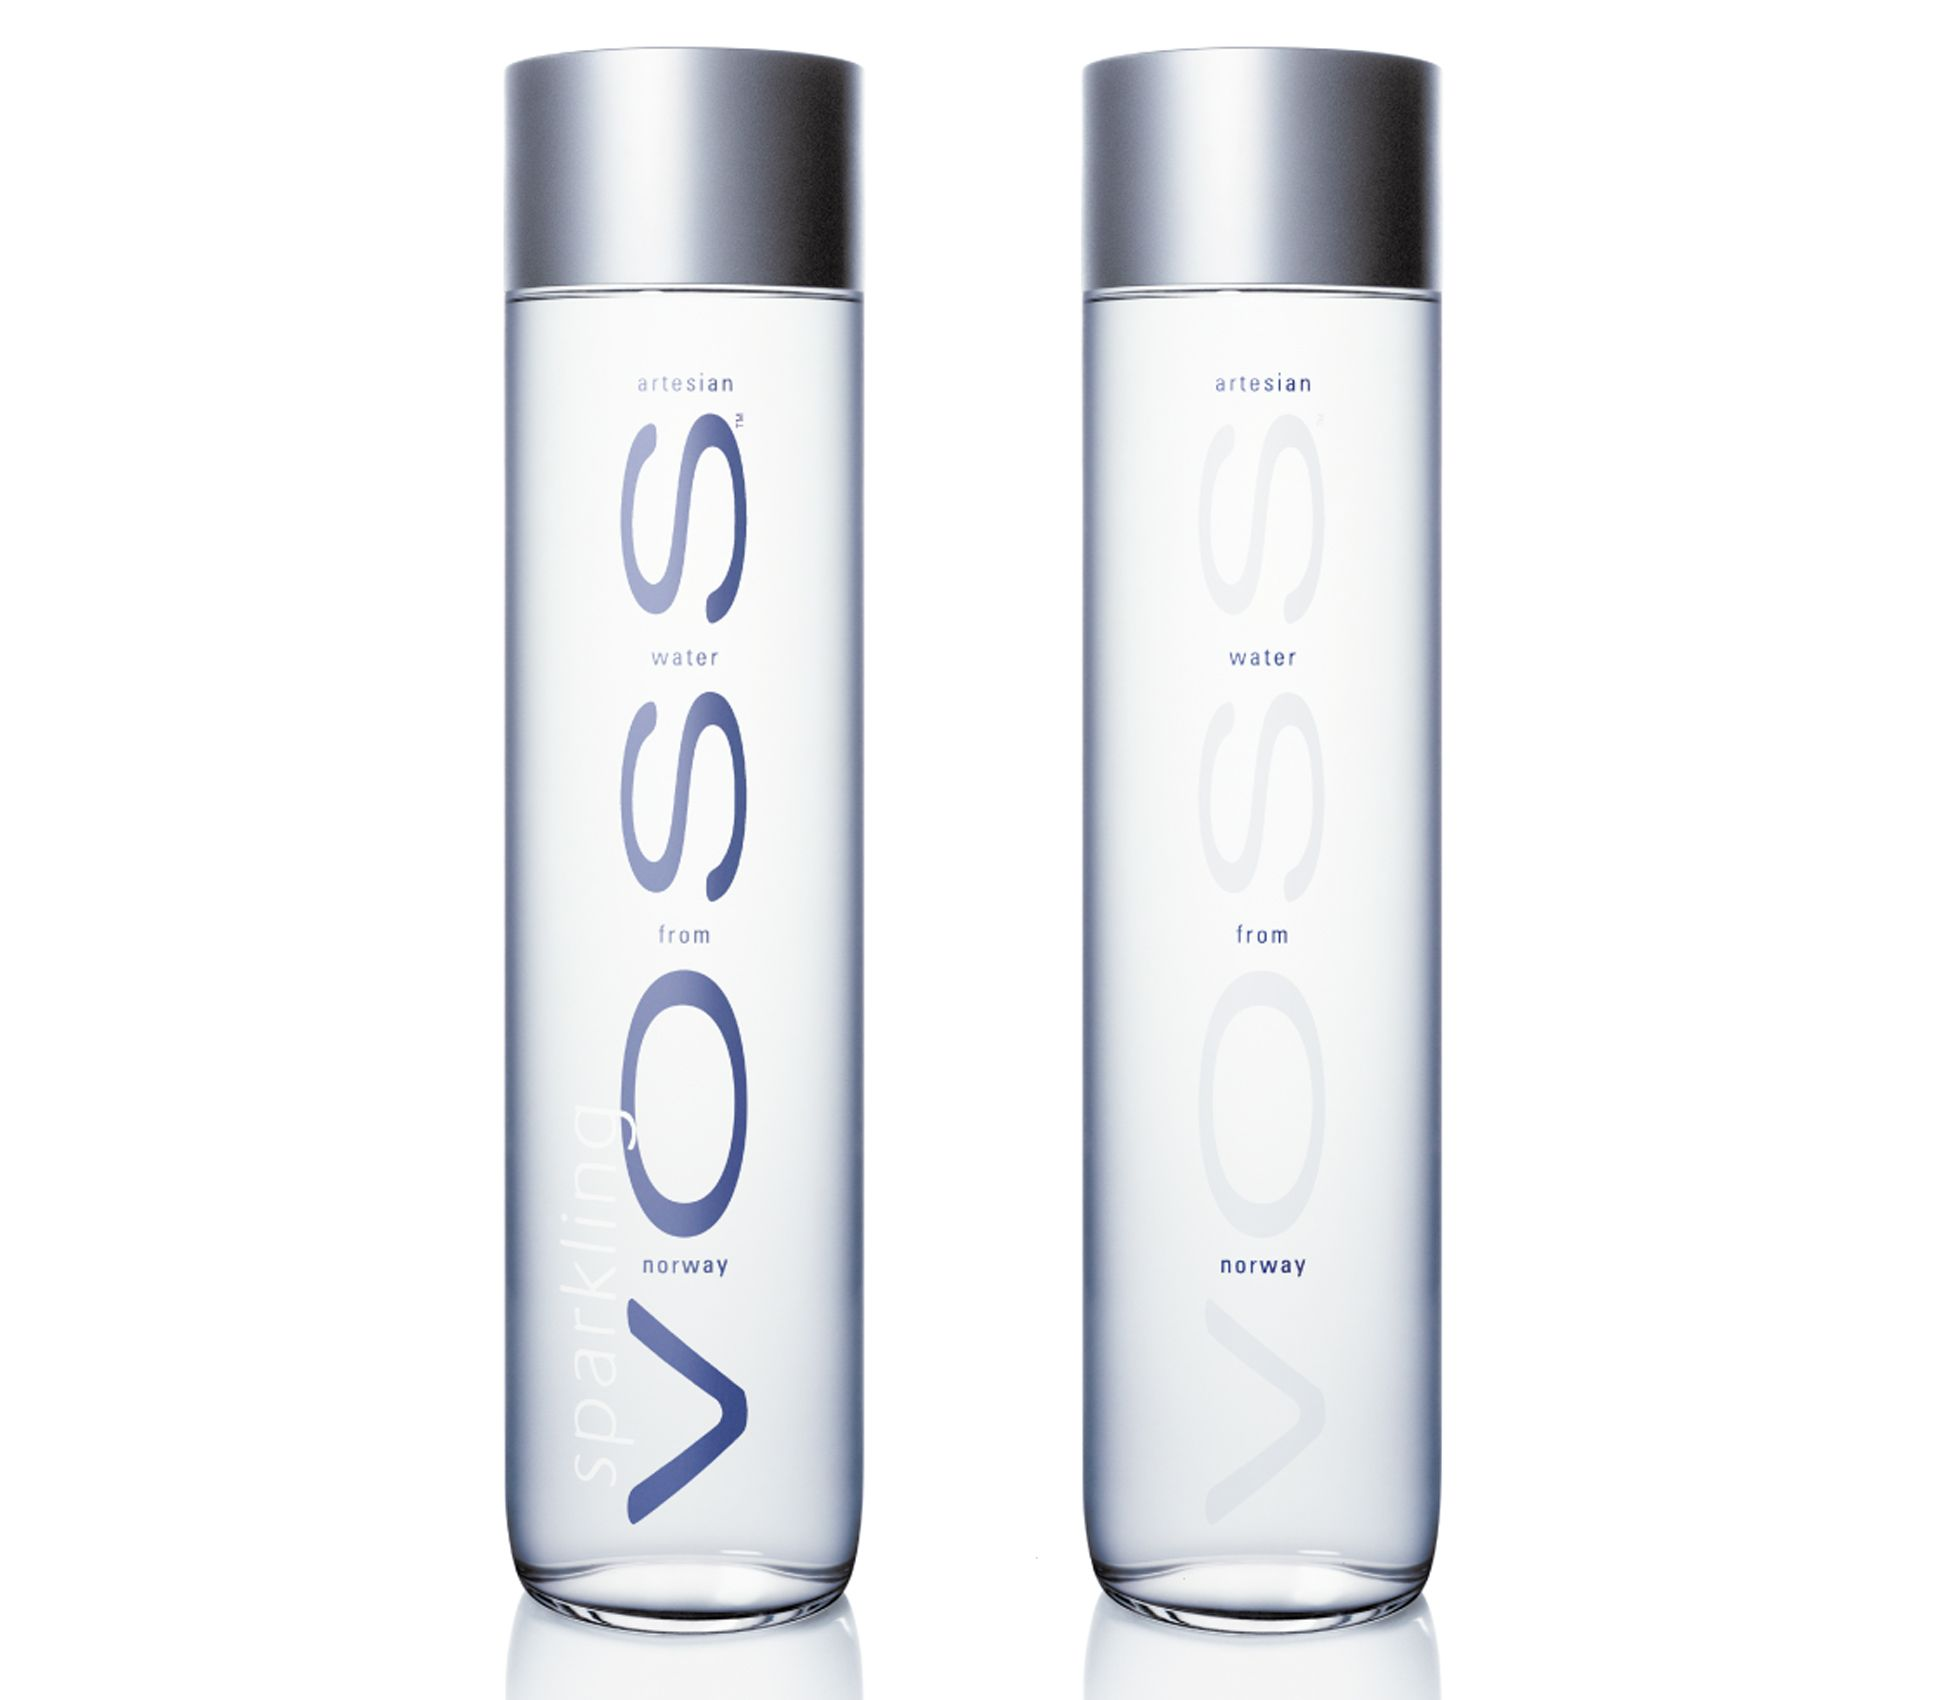 Voss Is A Company Which Products An Excellent Water The Package Is A Clear Cylindrical Glass Or Plastic Bottle The Name Is Set In Vertical On T 병 디자인 물병 미네랄